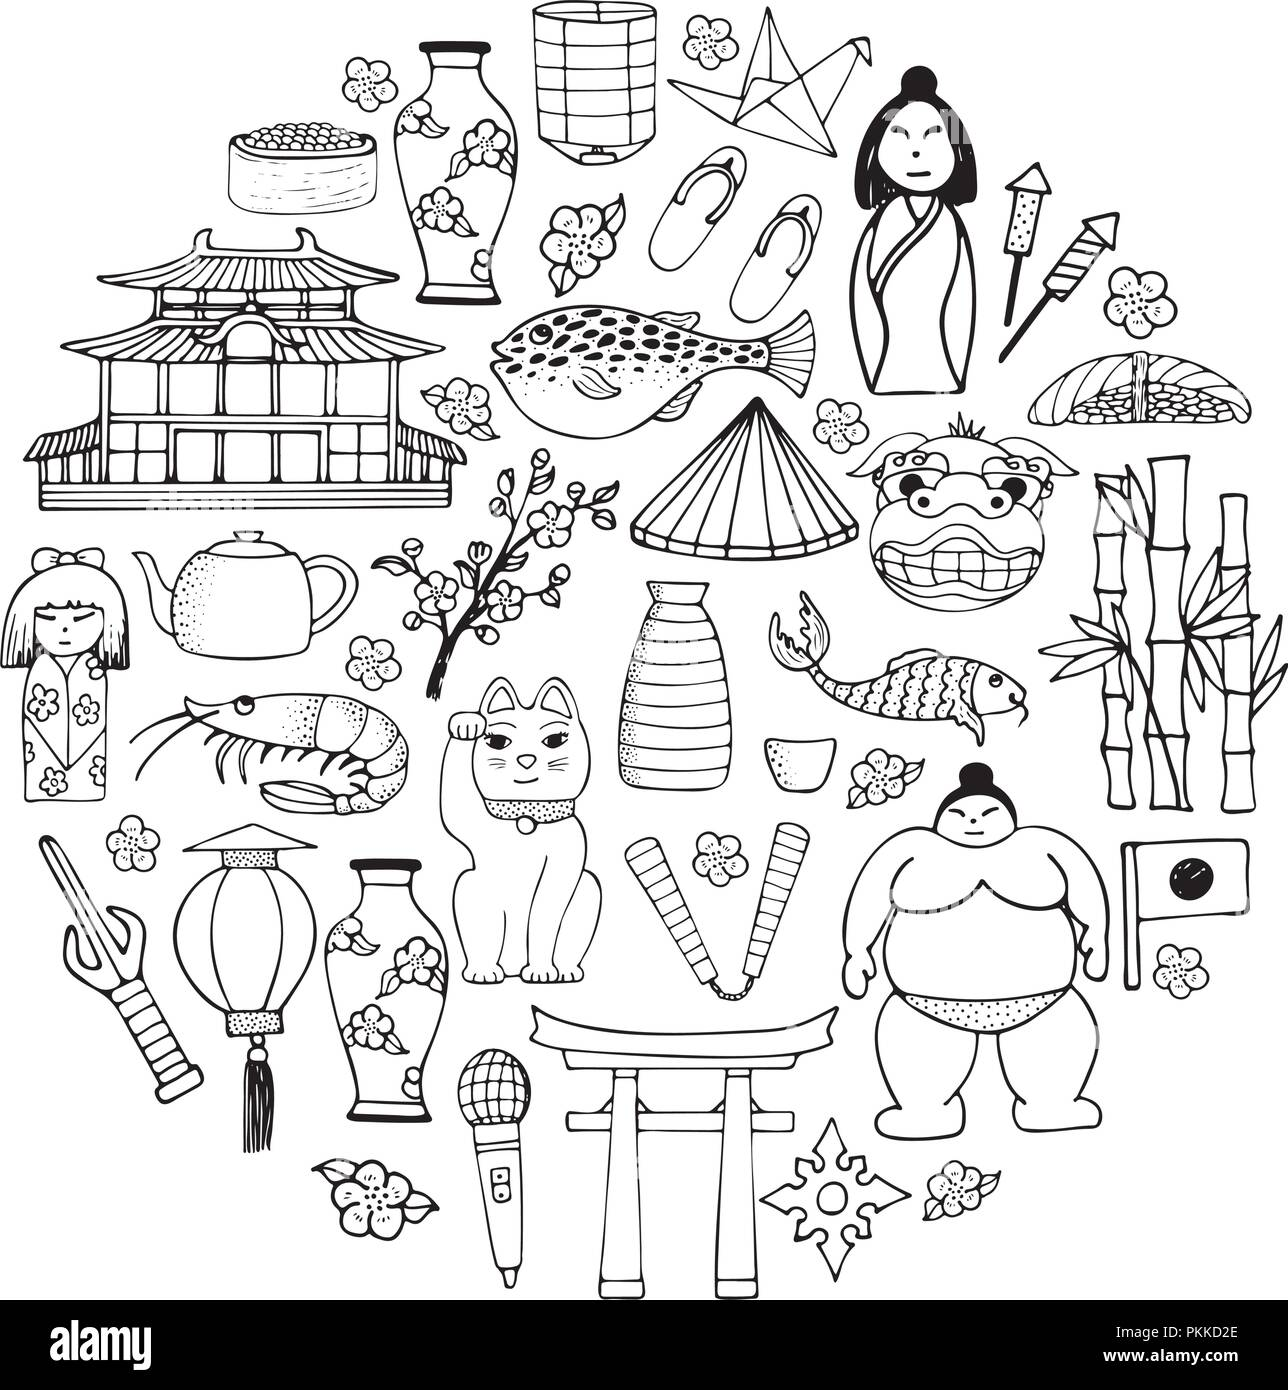 A Set Of Hand Drawn Il Rations About The Japanese Culture And Lifestyle Outline Elements